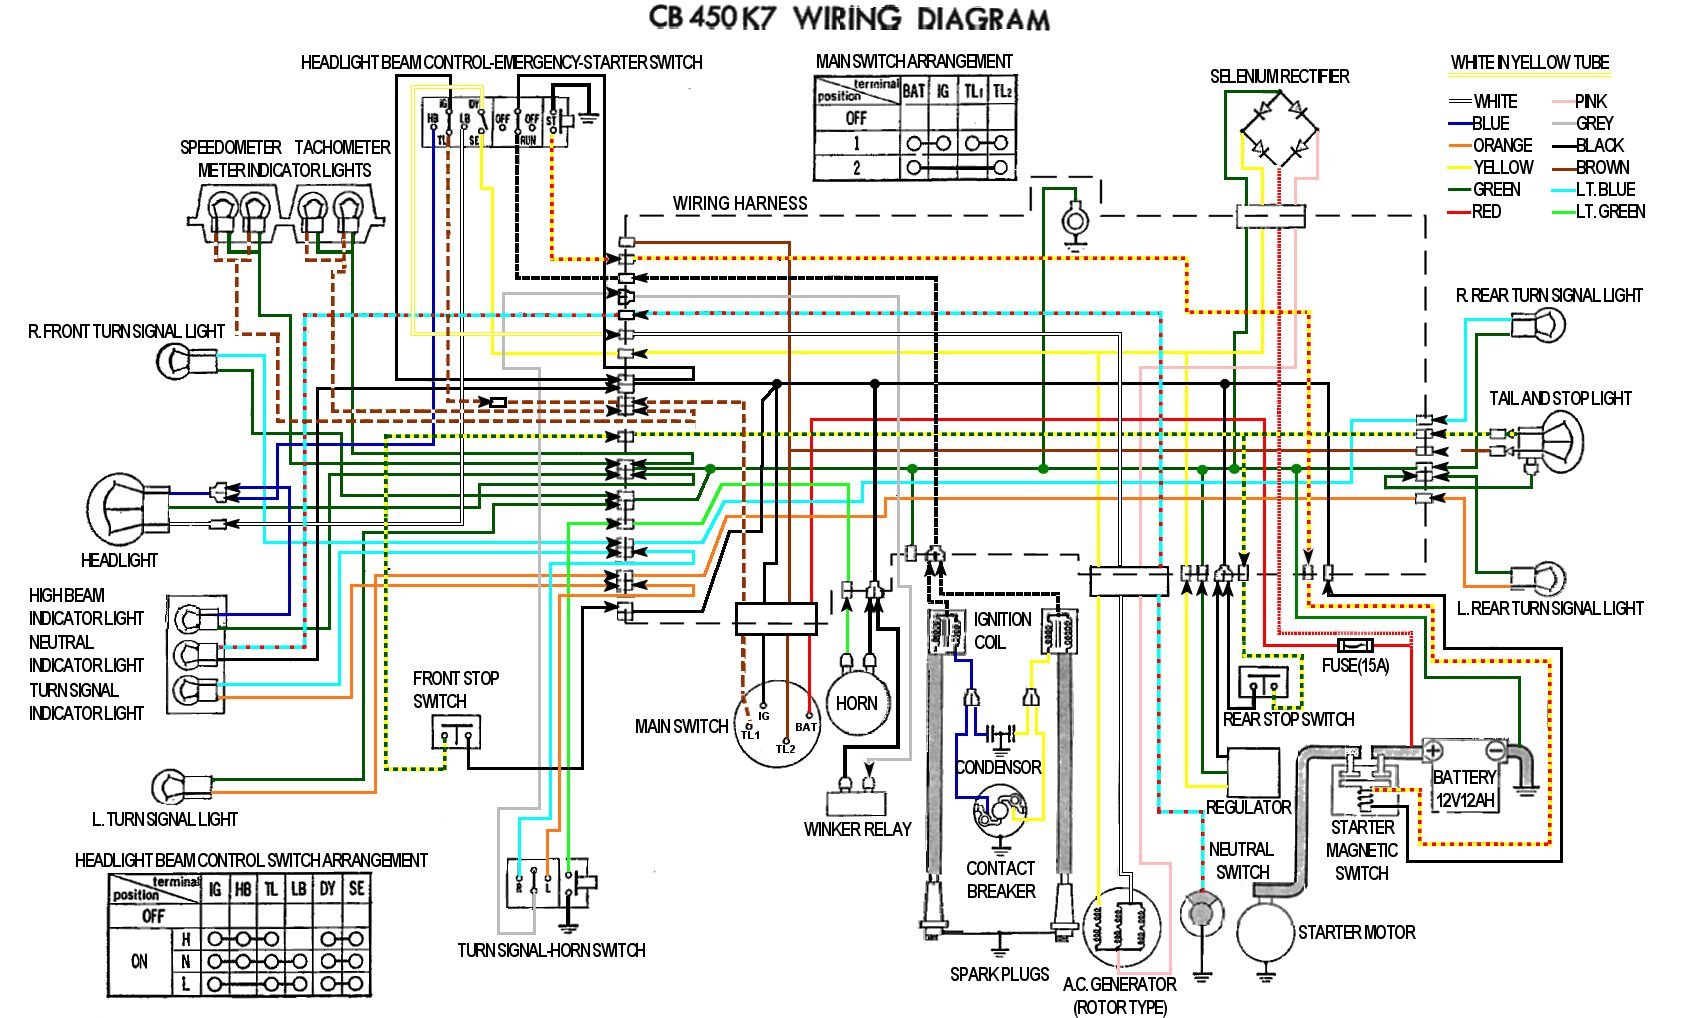 1229d1359991221 cb450 color wiring diagram now corrected factory service manual wiring harness2_compressed cb450 color wiring diagram (now corrected) color wiring diagram at suagrazia.org